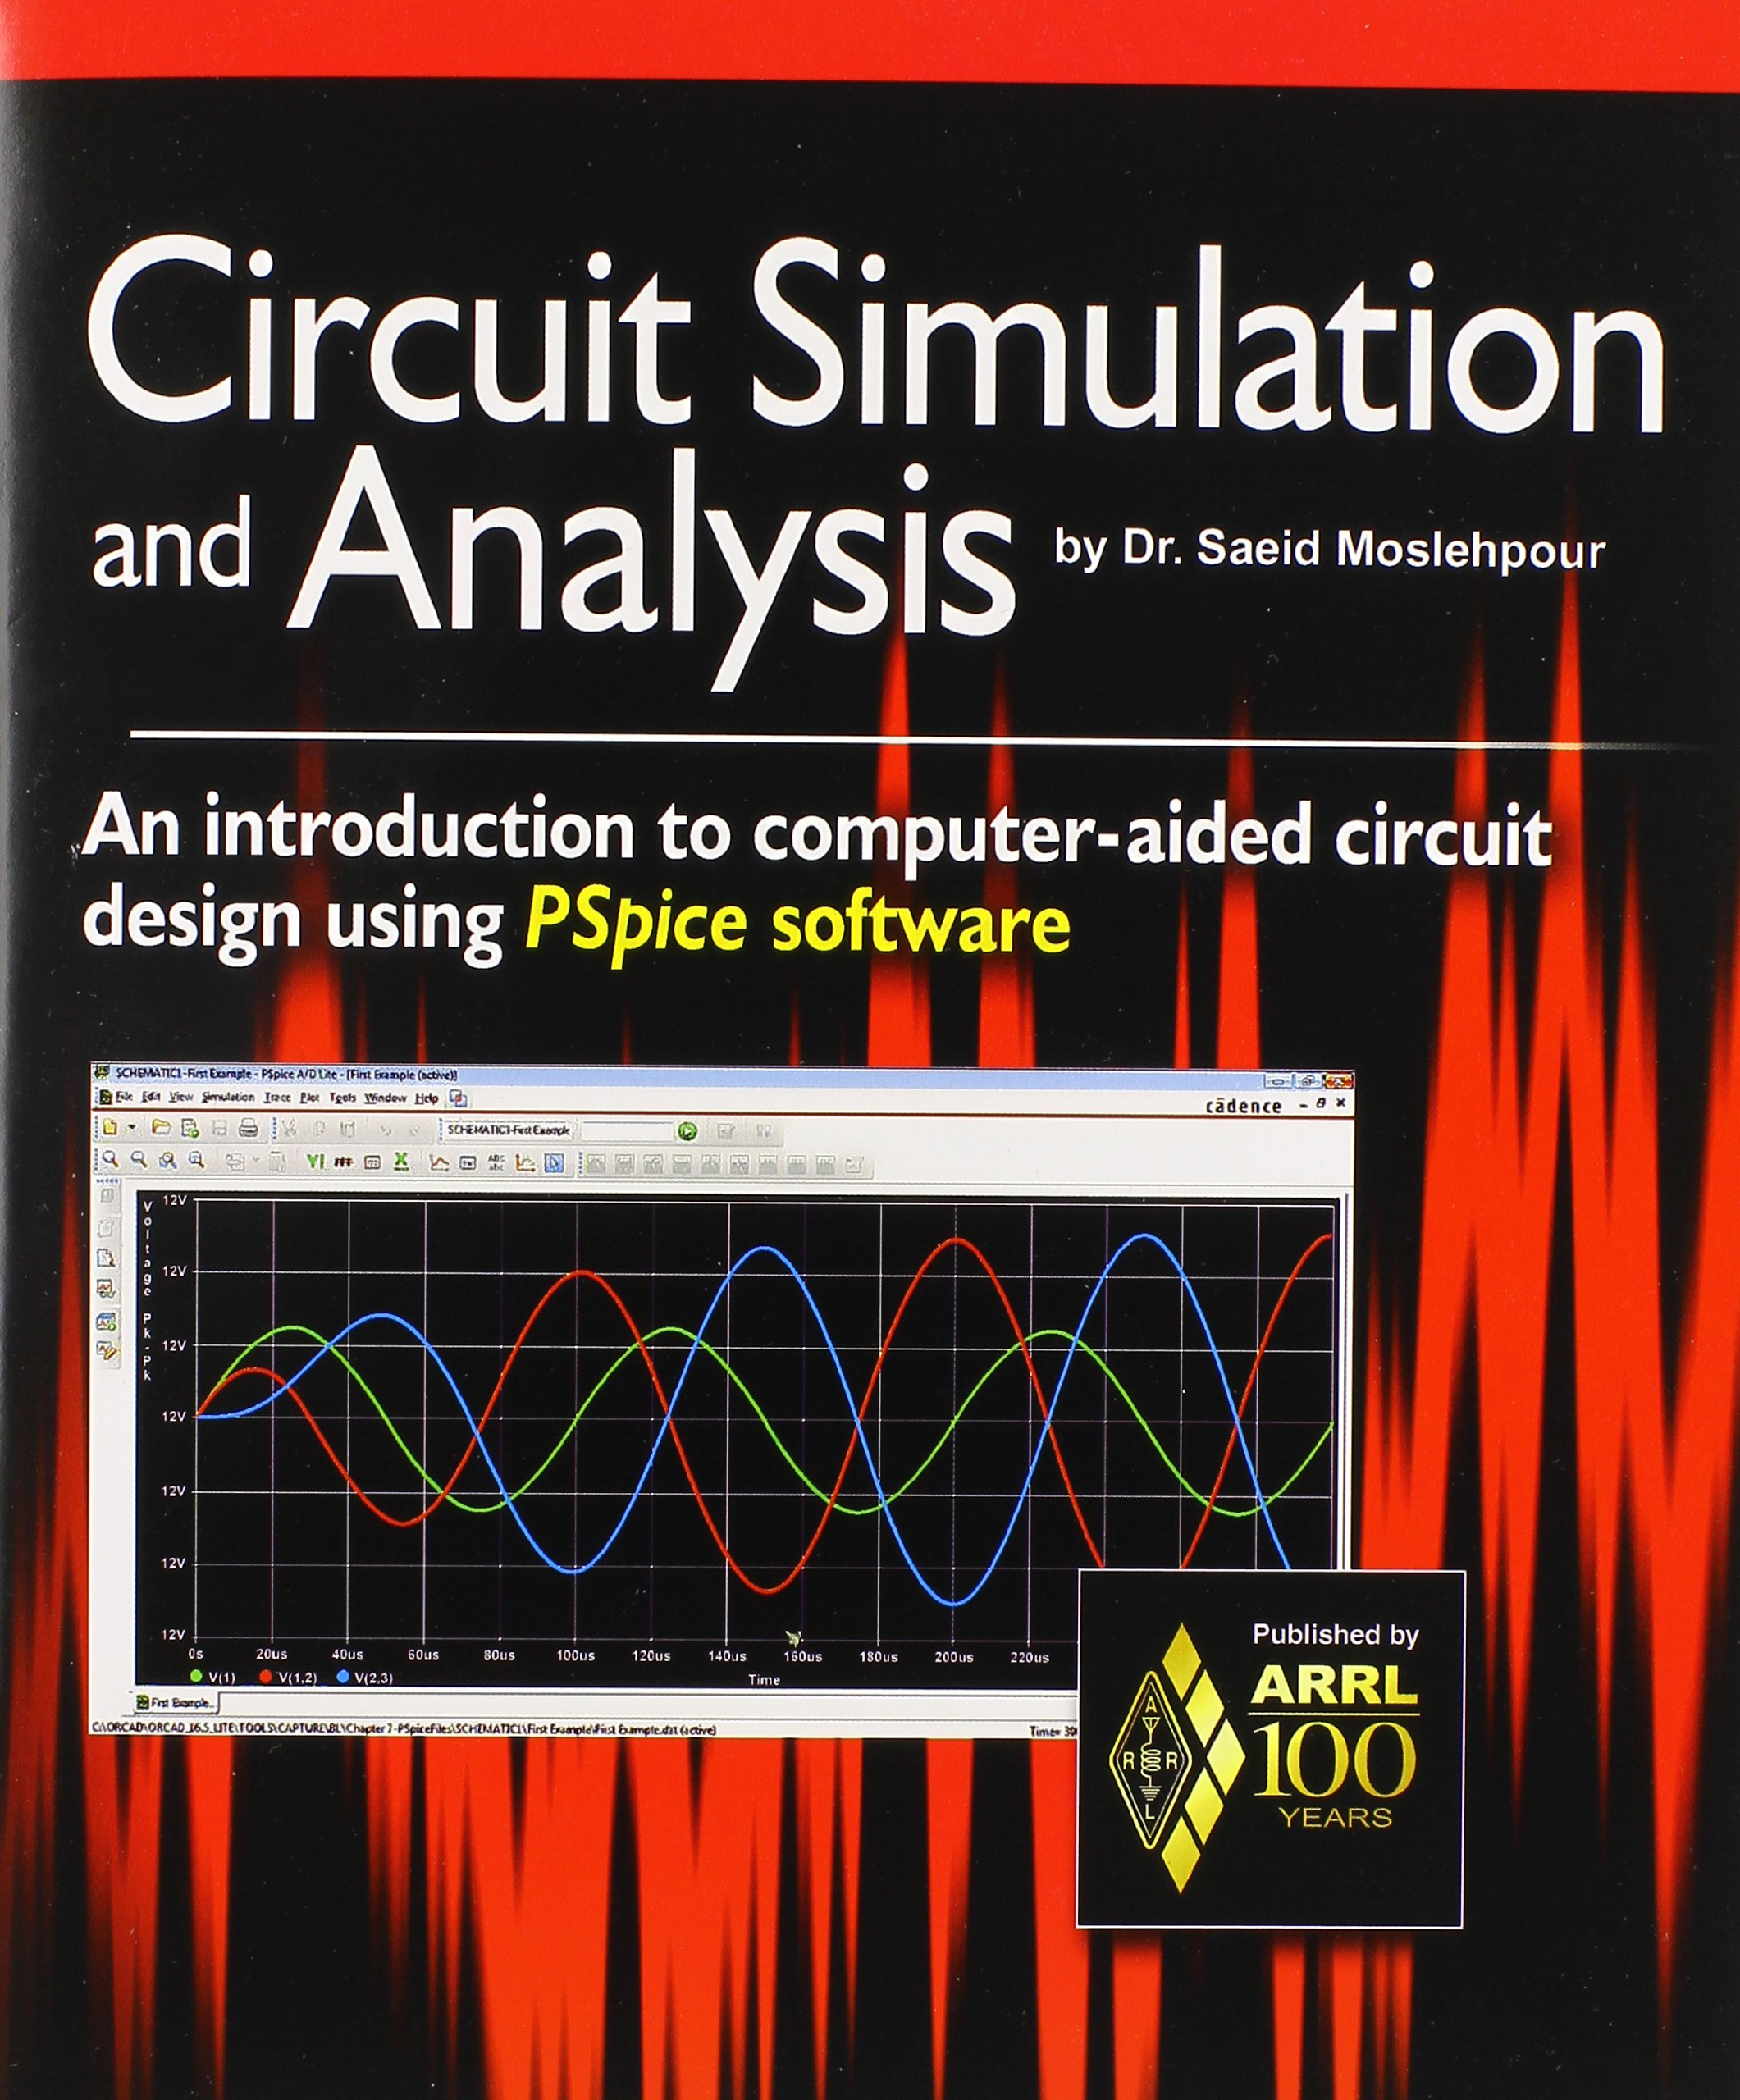 Circuit Simulation And Analysis Saeid Moslehpour 9781625950055 Design Simulator Software Package Program Books